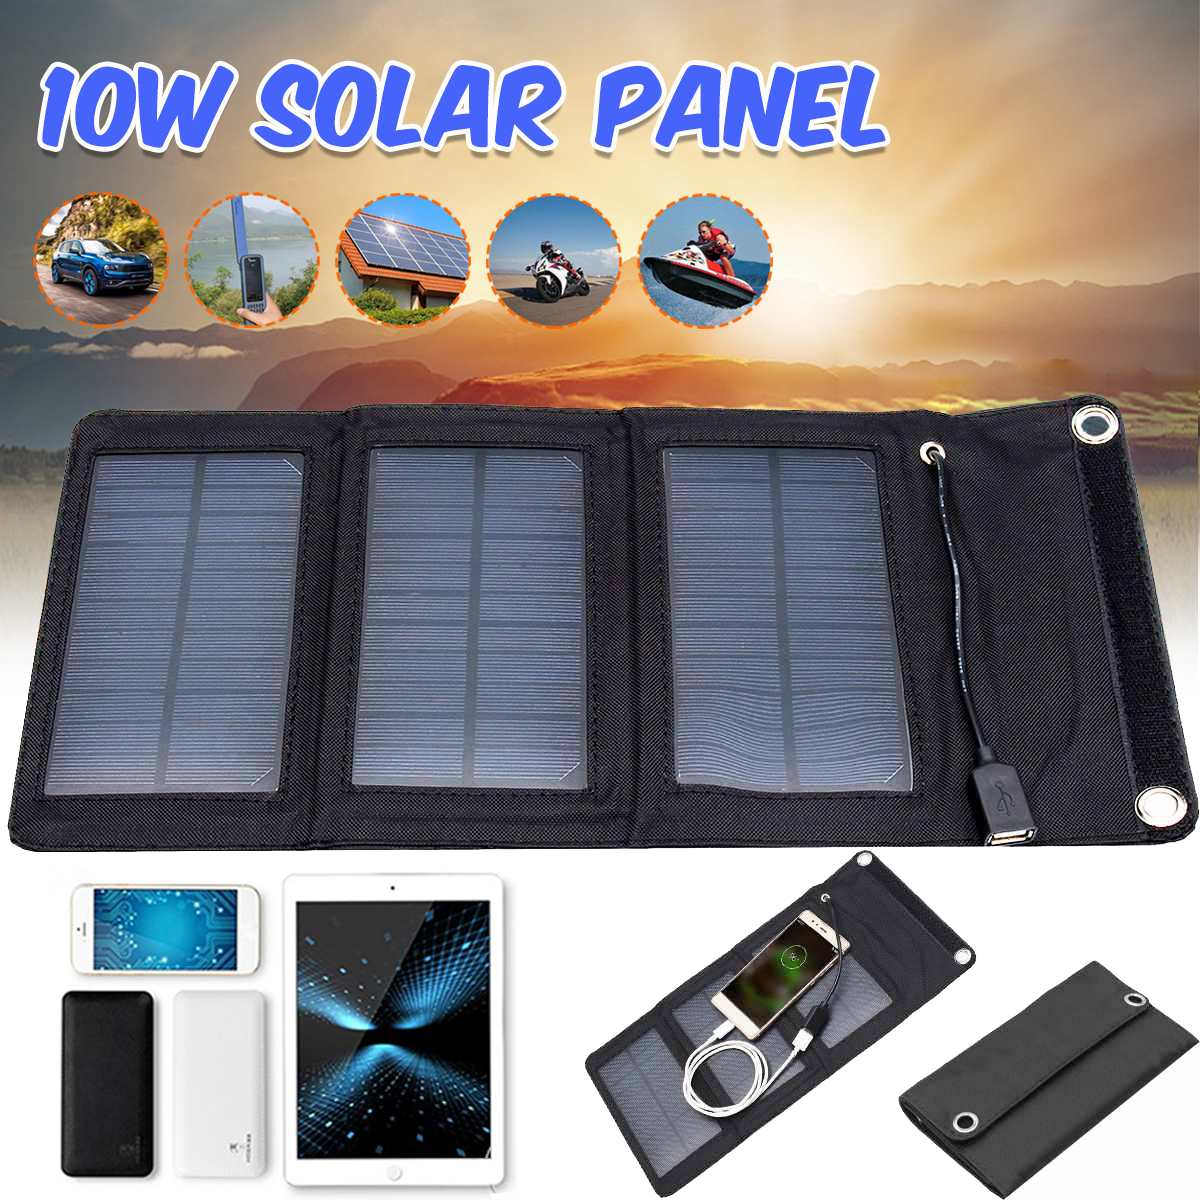 <font><b>10W</b></font> <font><b>5V</b></font> Folding <font><b>Solar</b></font> <font><b>Panel</b></font> Charger Foldable <font><b>Solar</b></font> <font><b>Panel</b></font> Power Waterproof Charger Mobile Power Bank for Phone Battery USB Port image